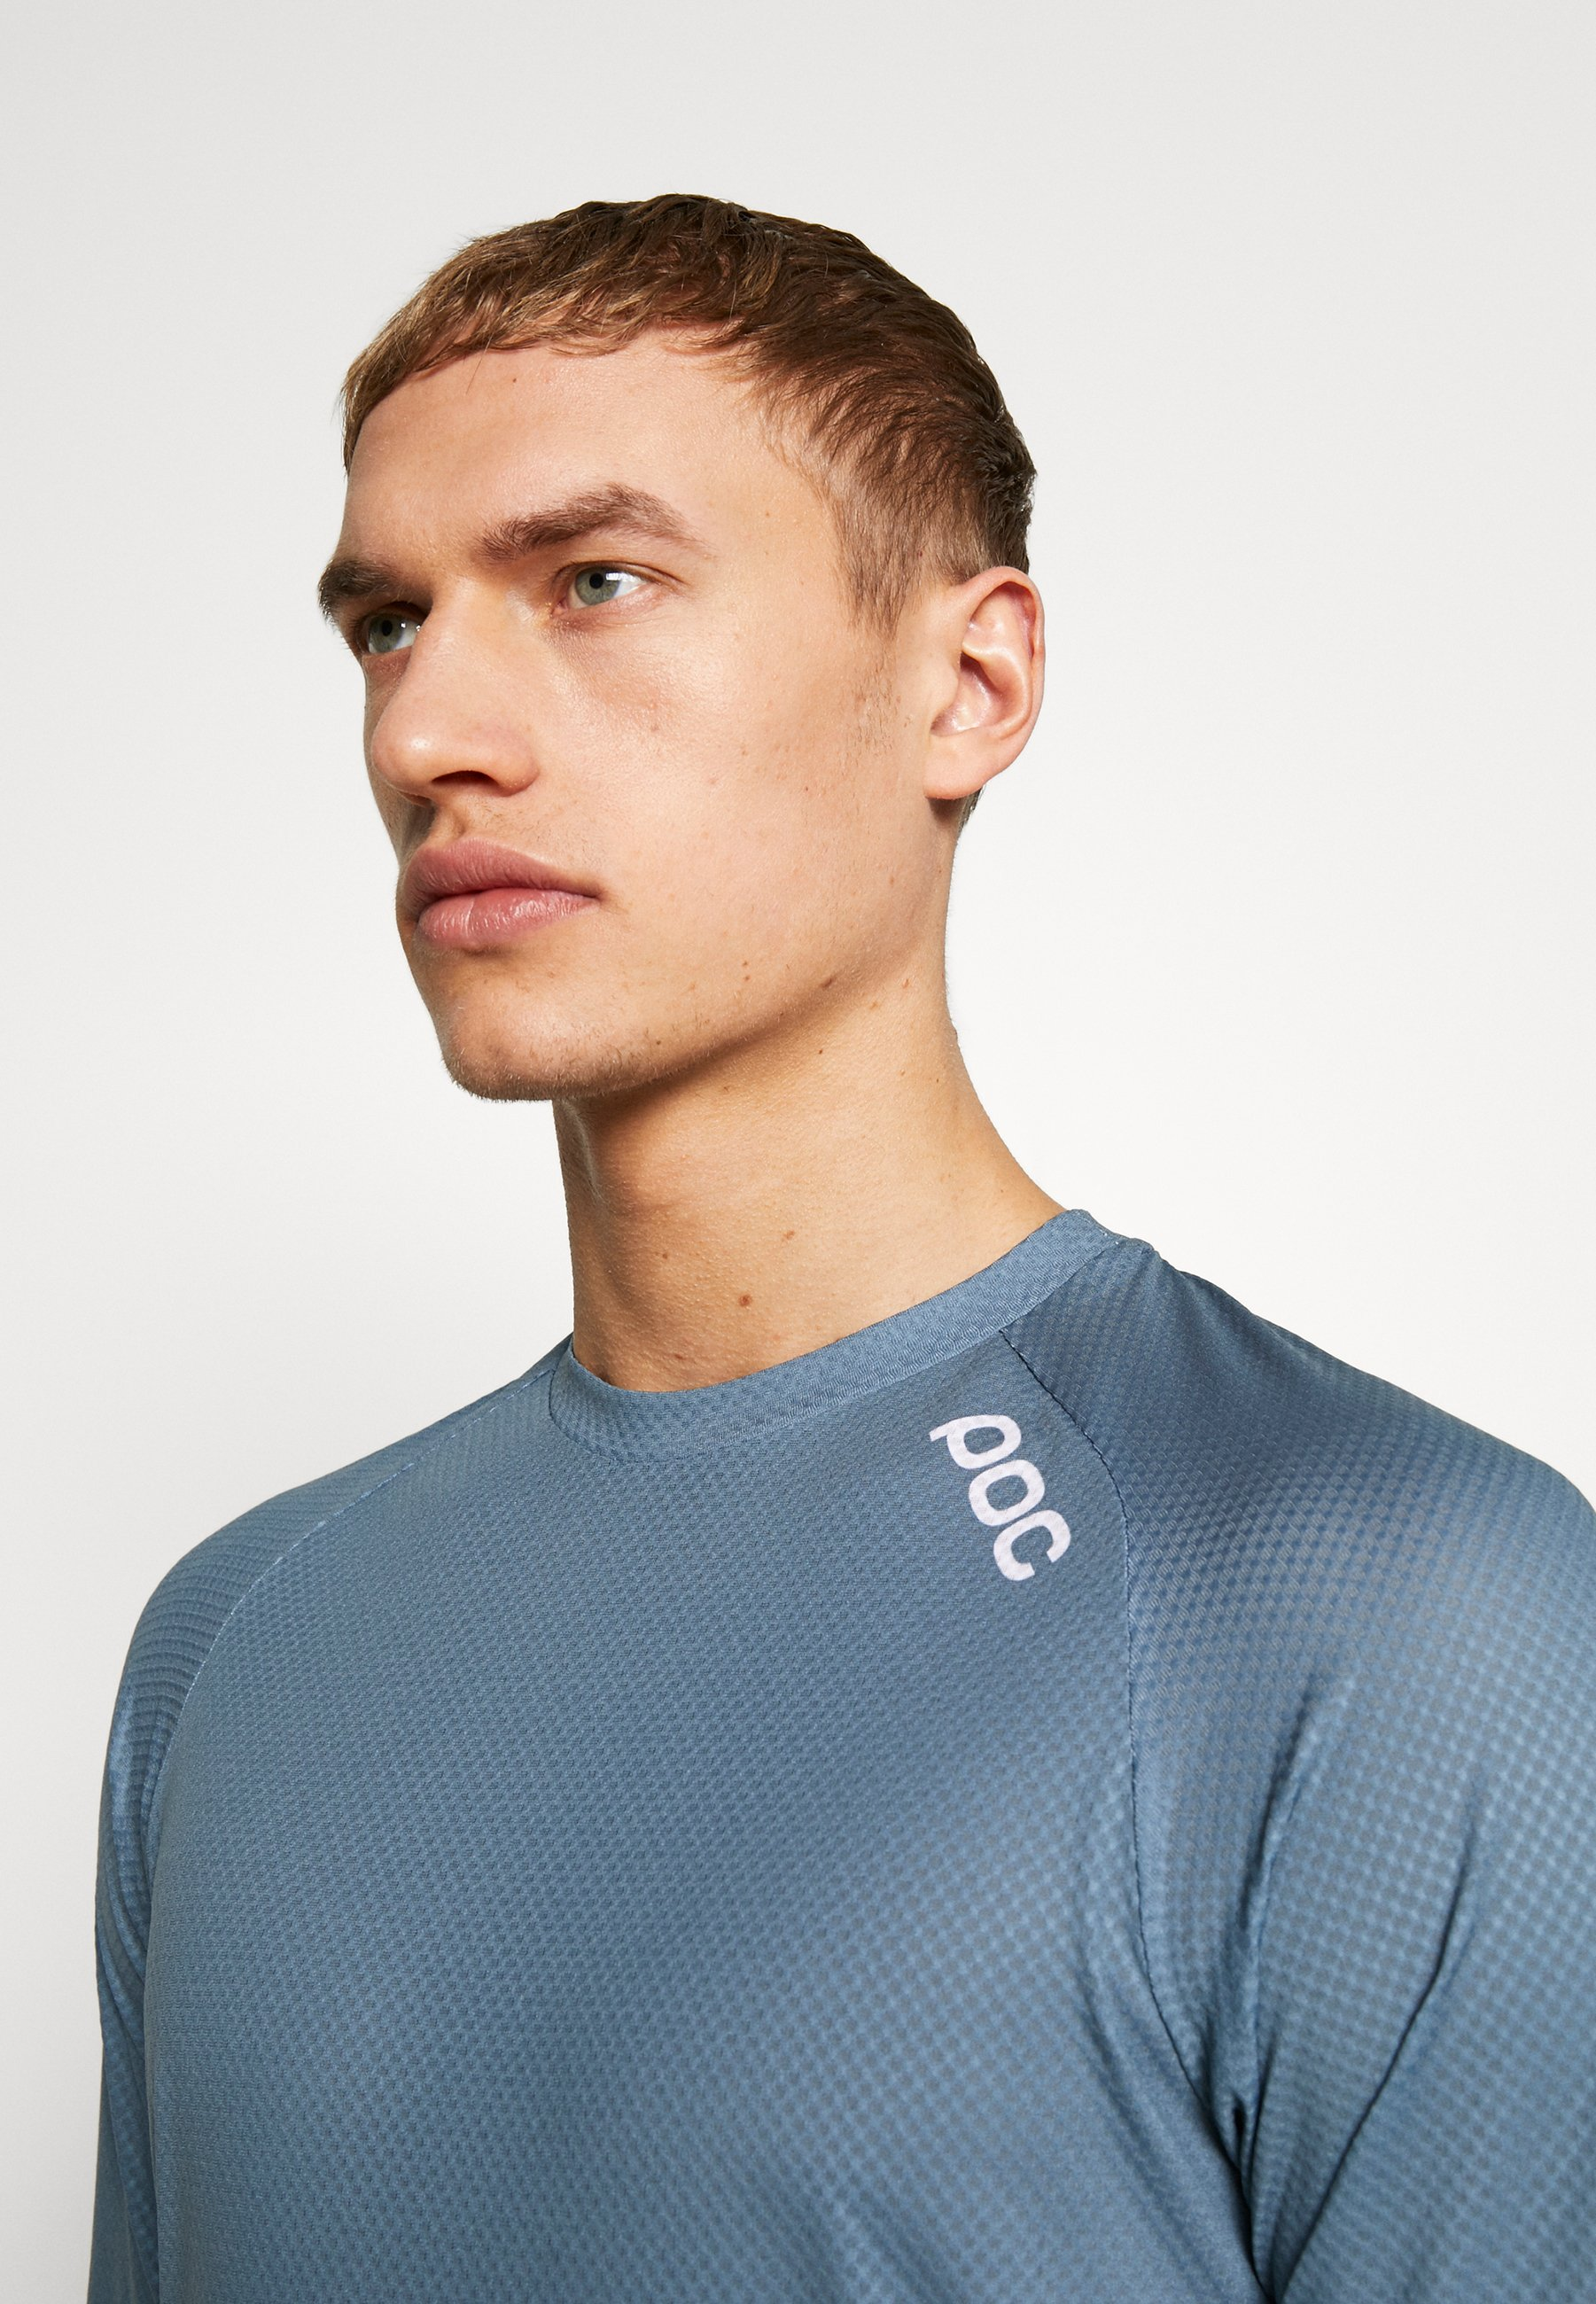 Poc Essential Enduro Light - T-shirt Med Print Calcite Multi Blue